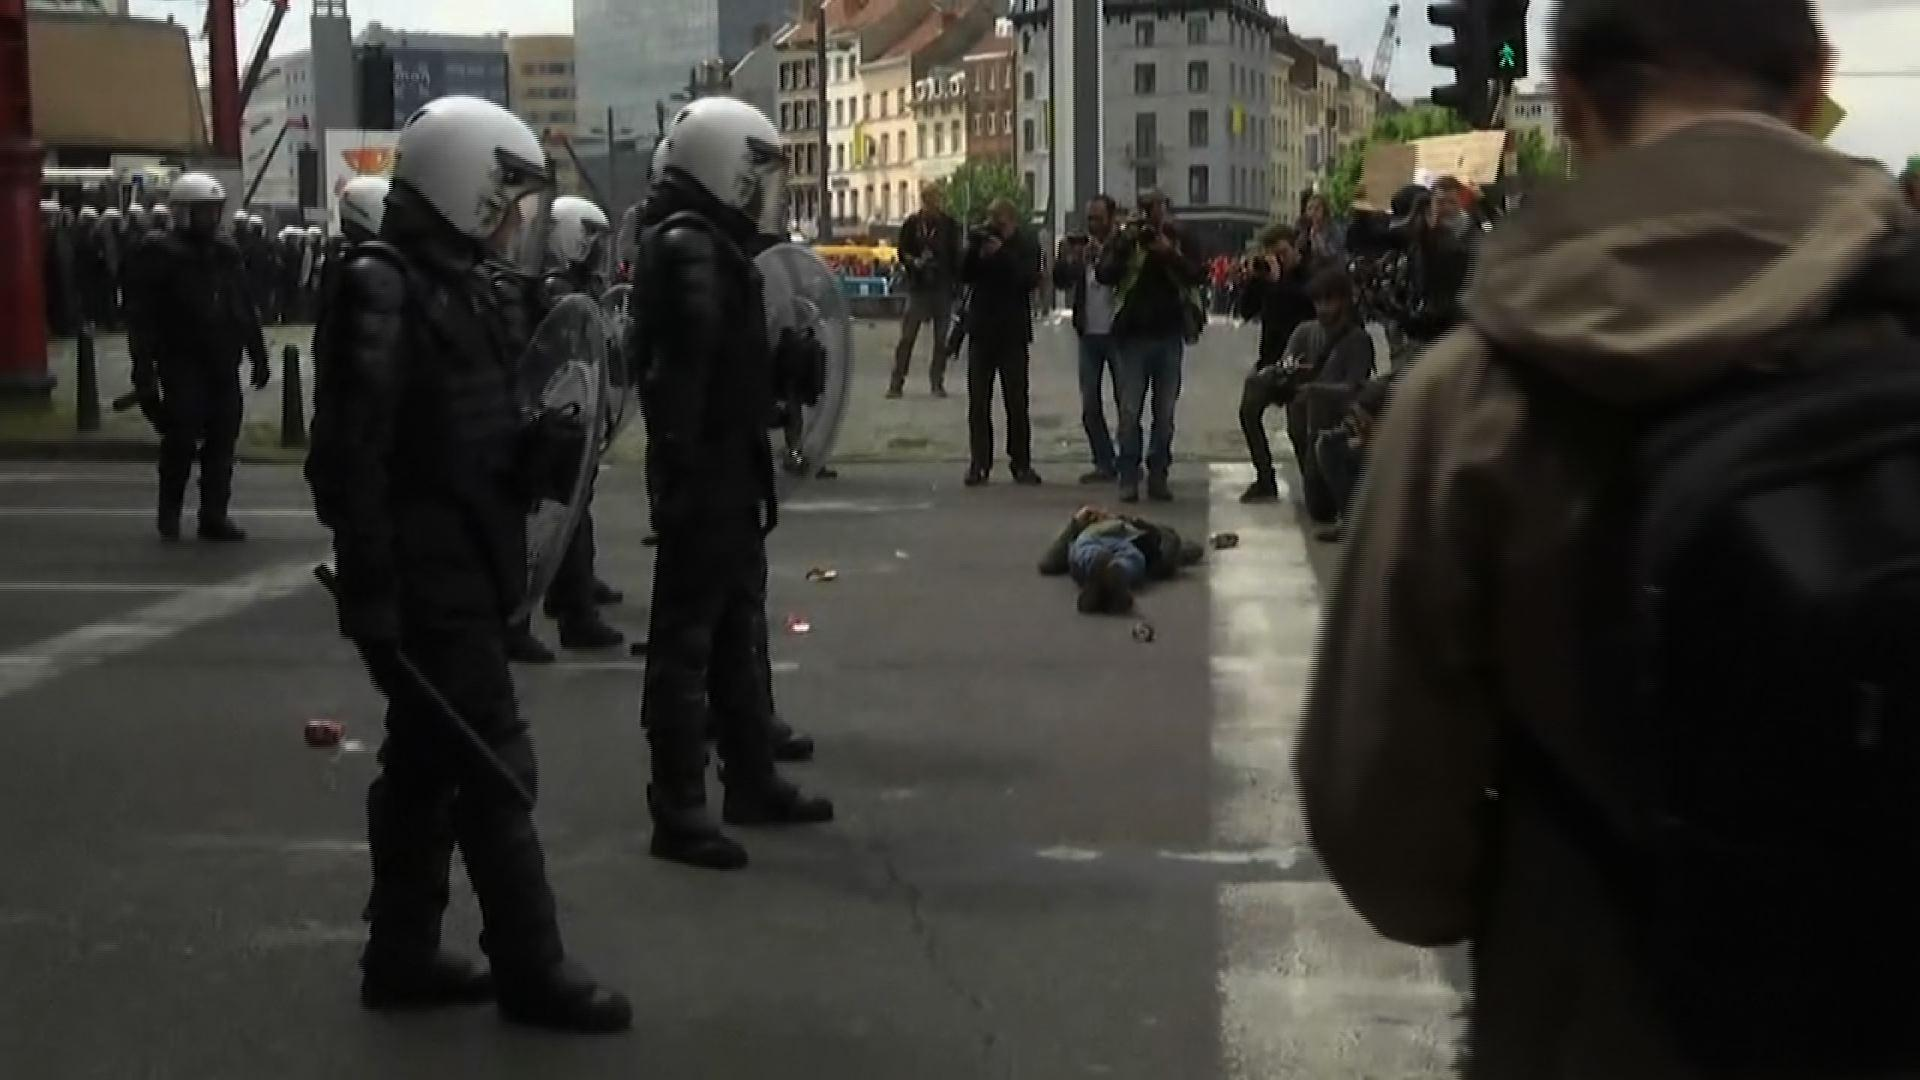 Raw: Belgians Clash at Anti-Austerity Protest